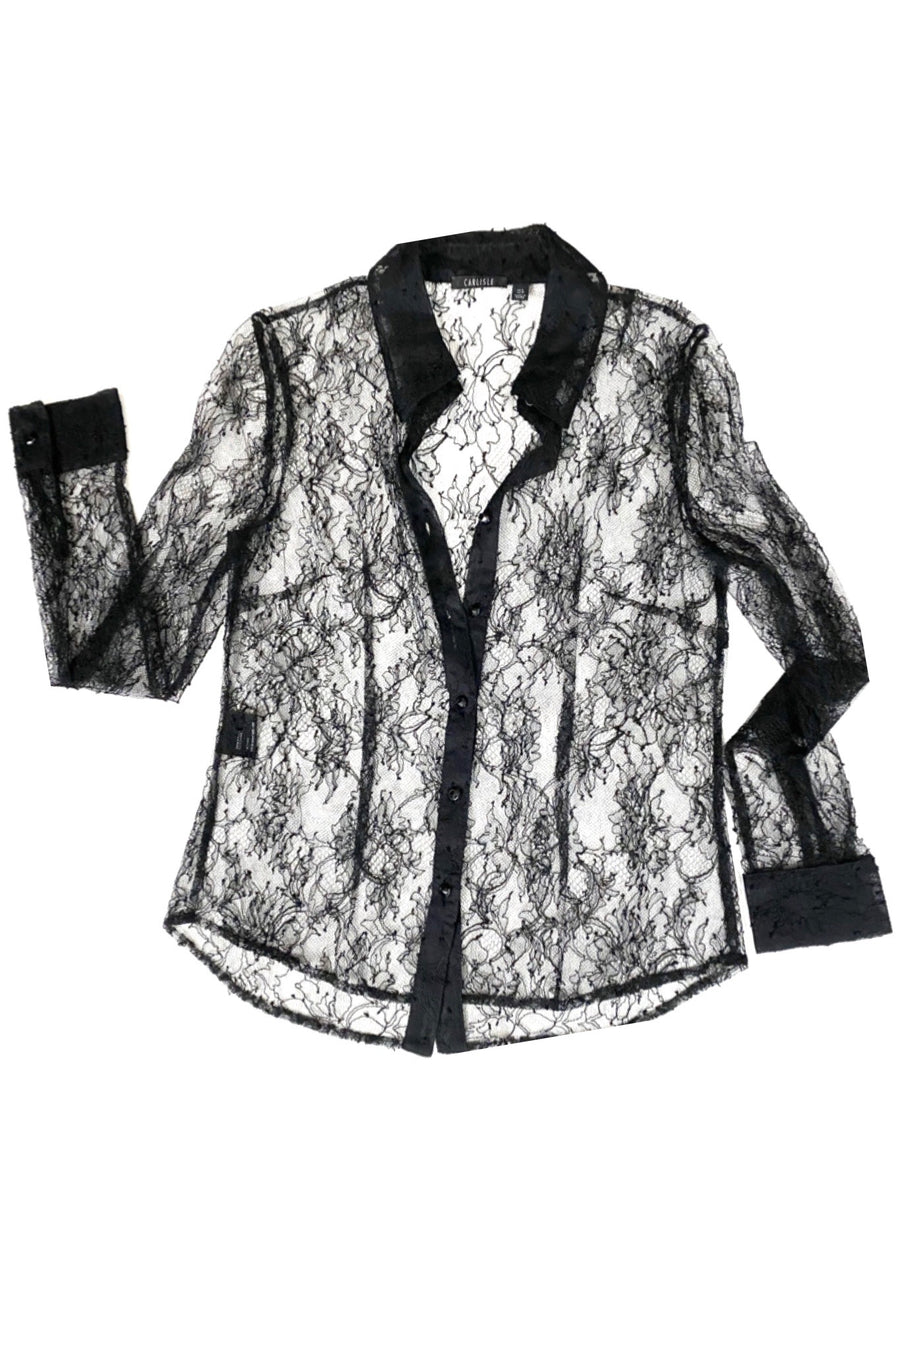 Carlisle Classic Pointed Collar Black Lace Blouse | 8